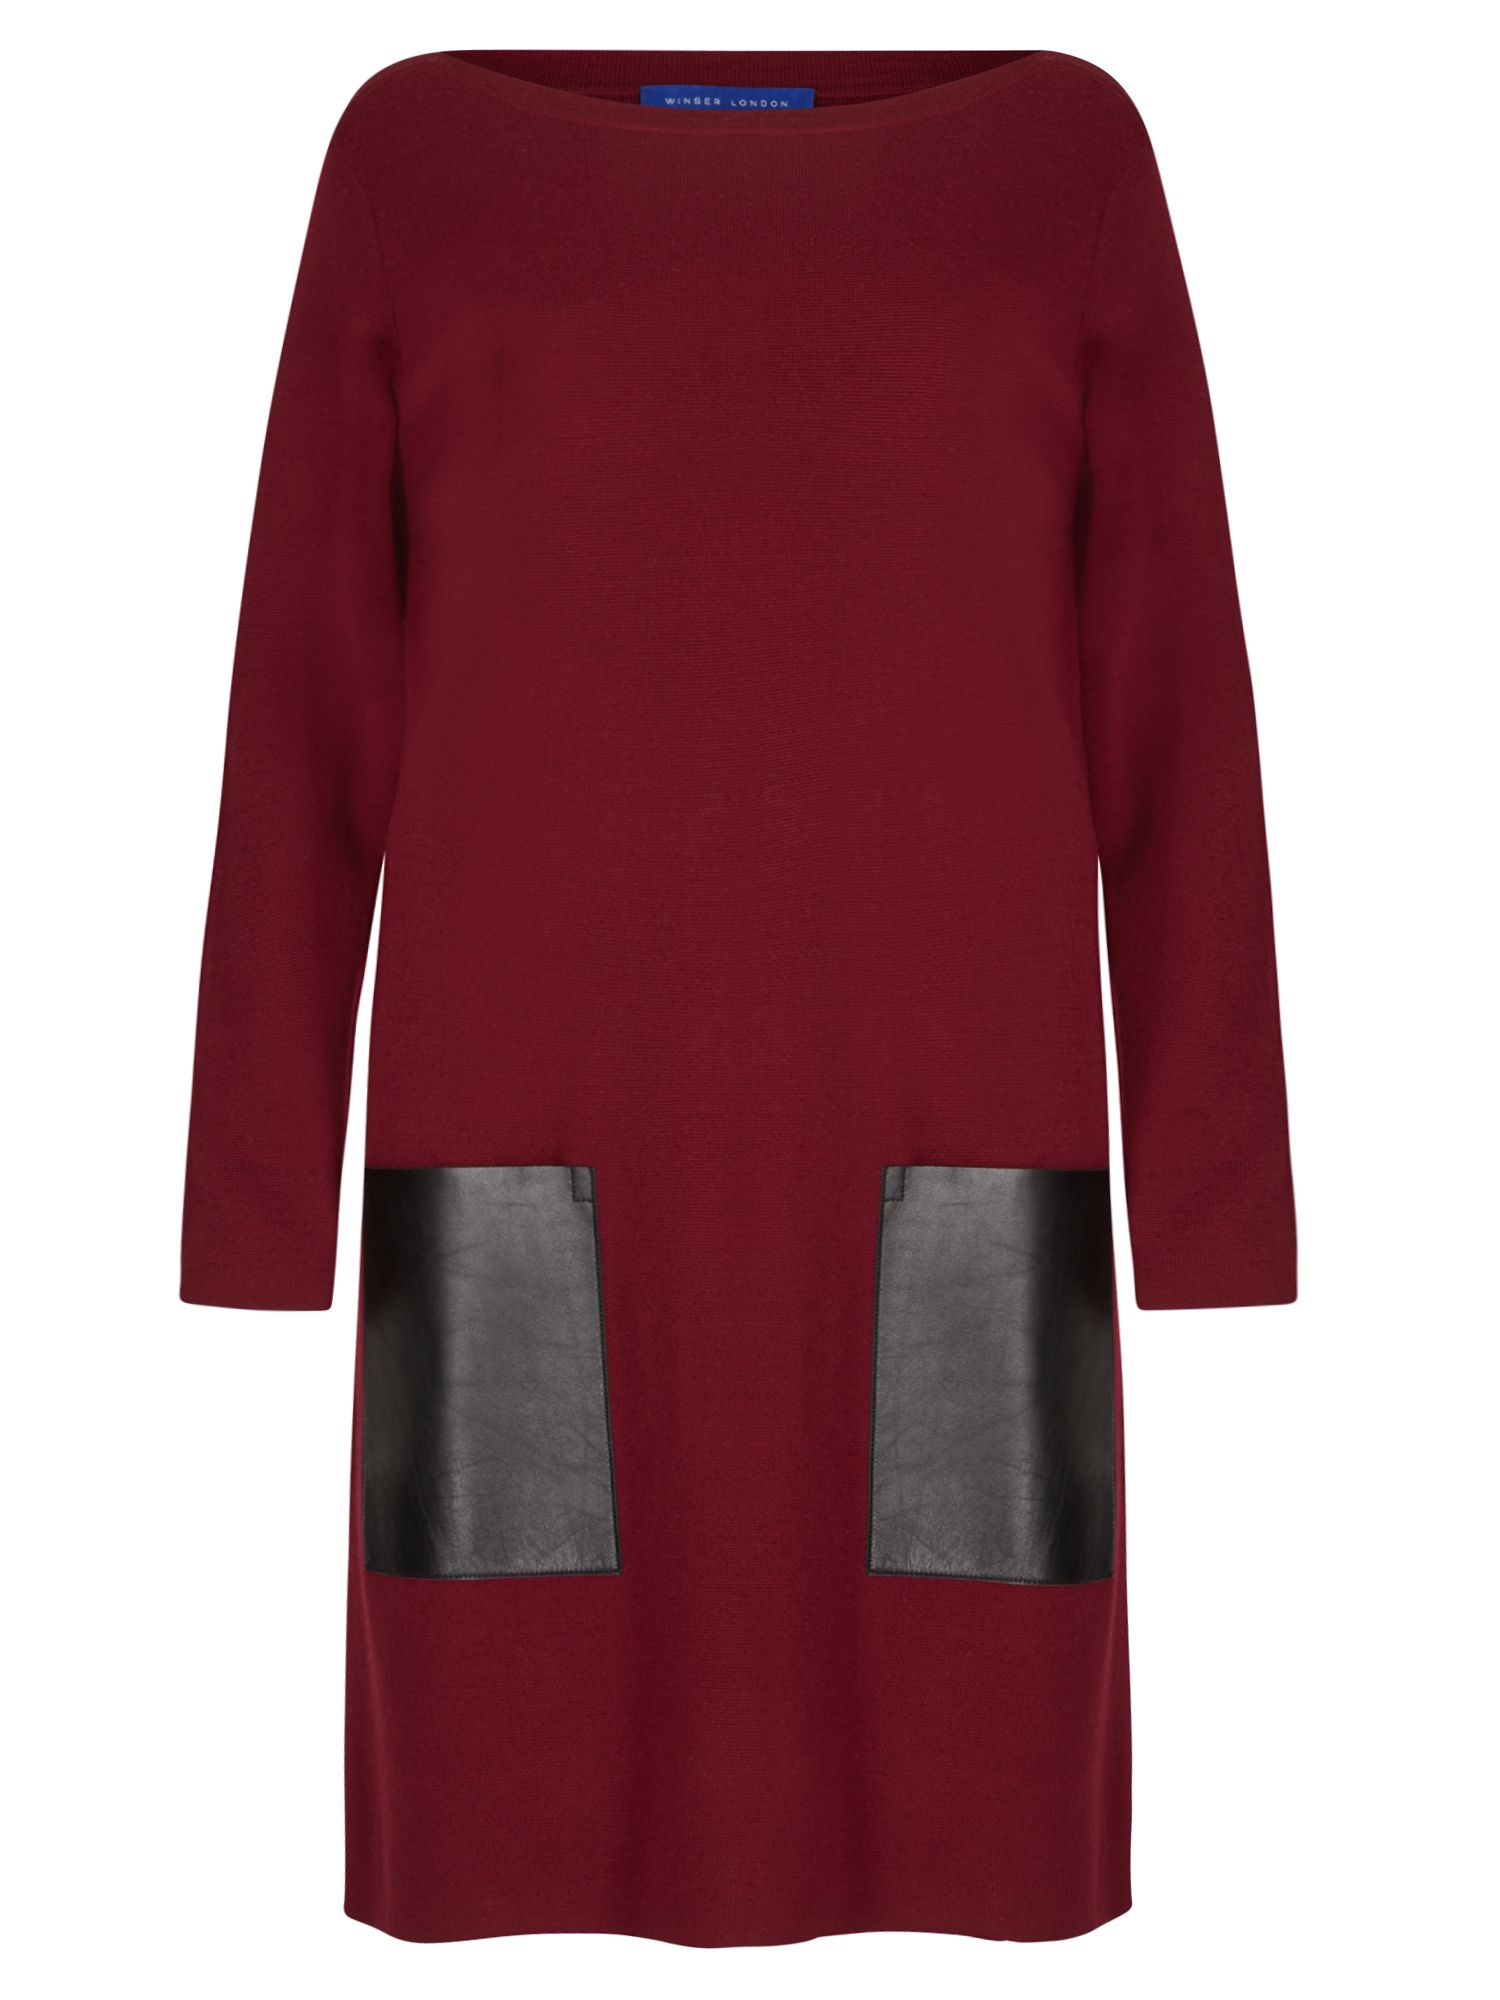 Winser London Milano Wool Dress With Pockets, Red